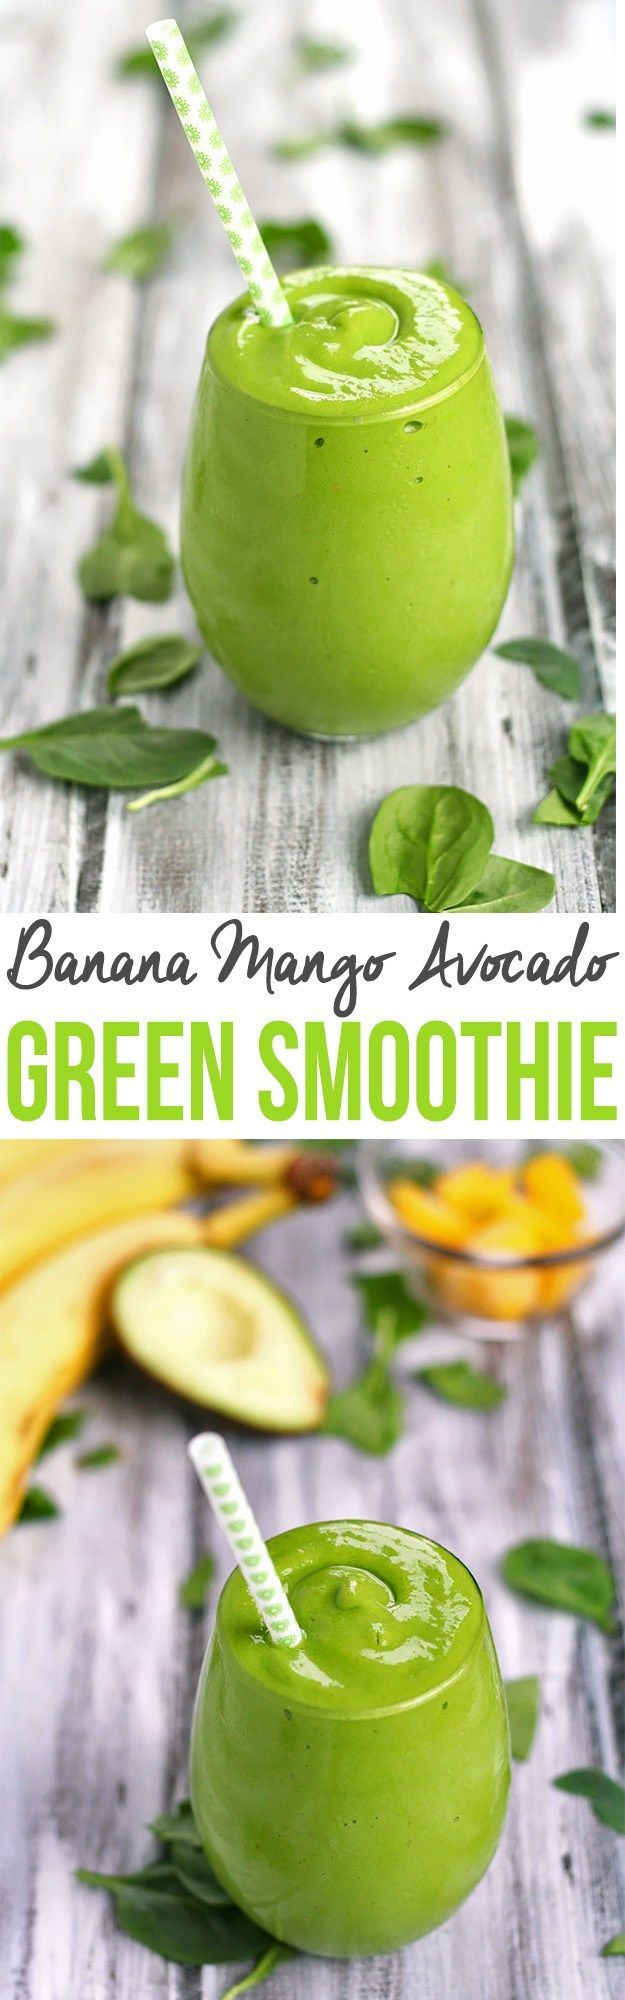 What better way to start eating healthier than with a green smoothie? This Banana Mango Avocado Green Smoothie is simple, creamy, and refreshing!